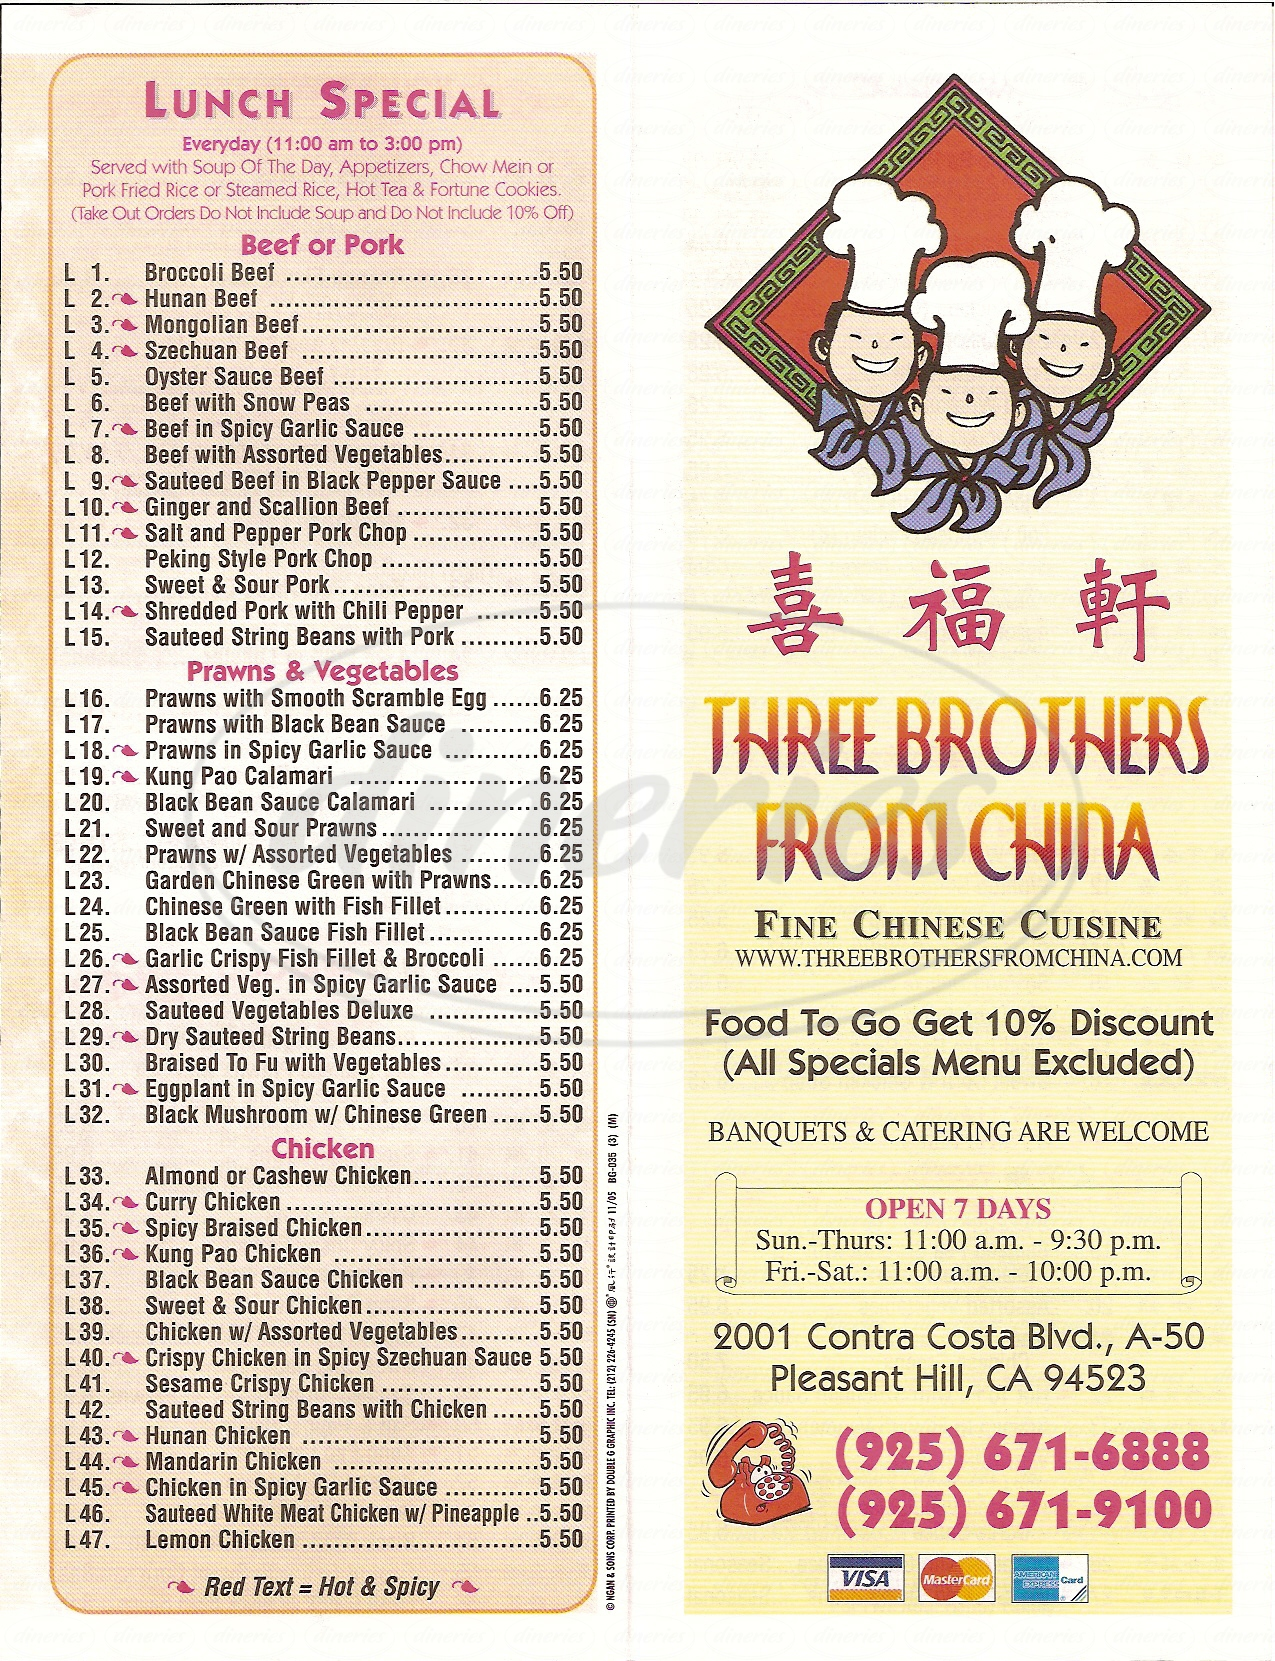 menu for 3 Brothers From China